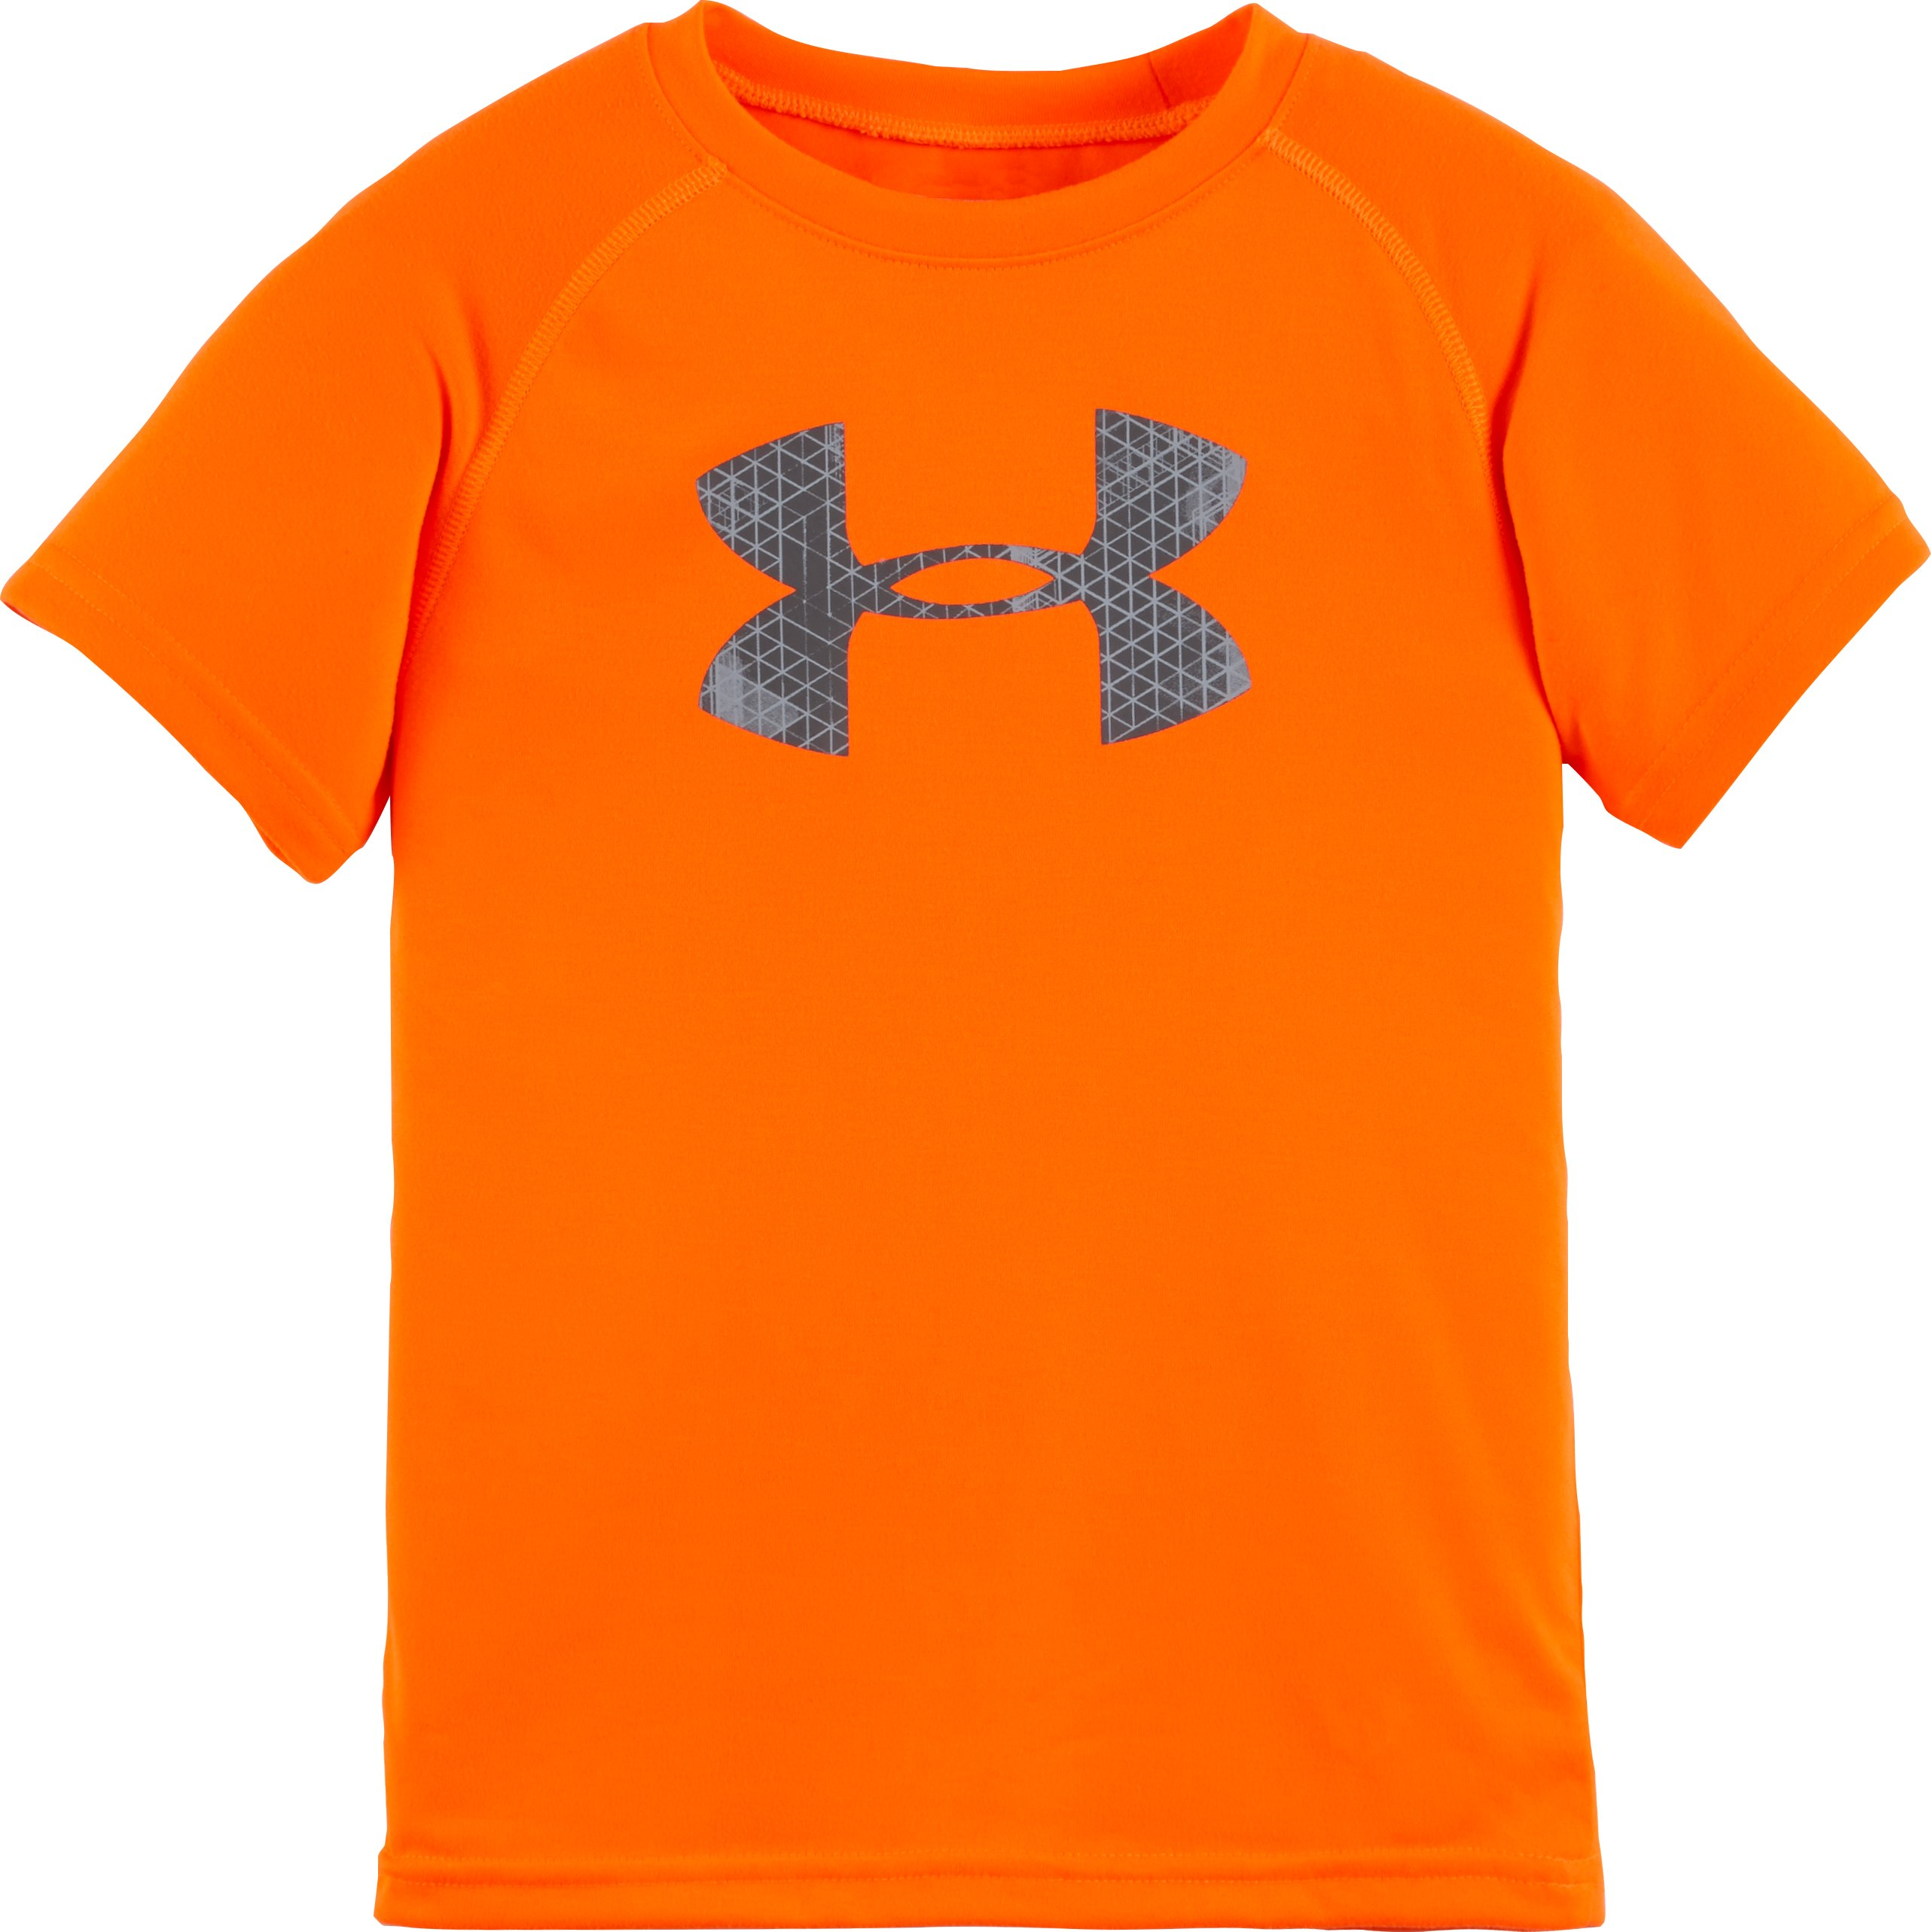 Boys' Pre-School UA Hexascope Big Logo Short Sleeve T-Shirt, Blaze Orange, zoomed image